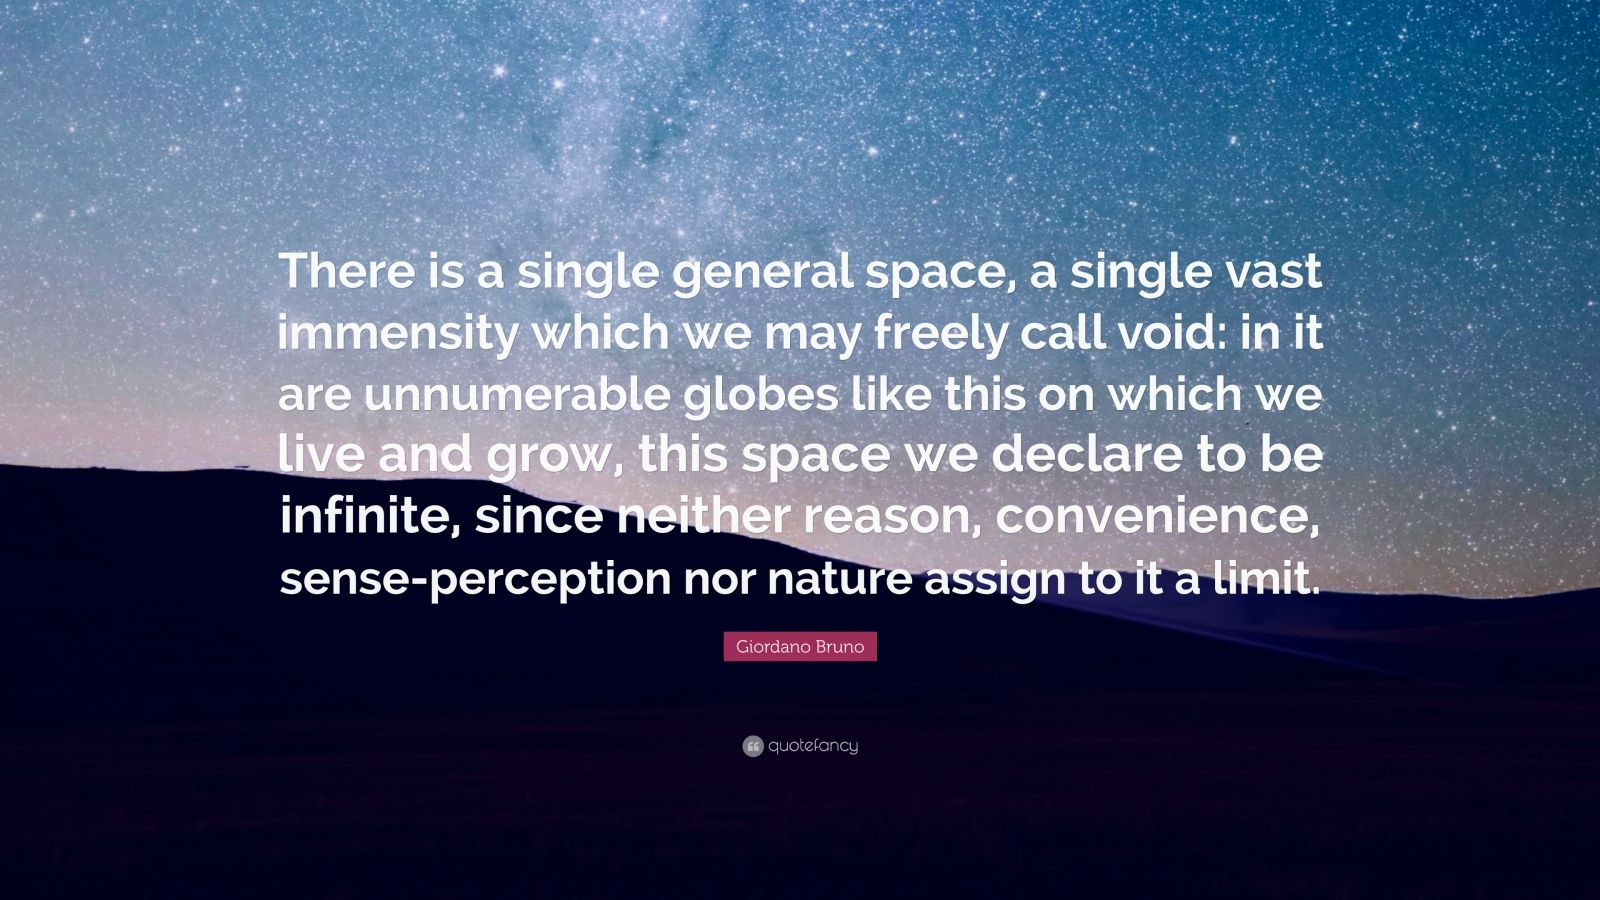 "Giordano Bruno Quote: ""There is a single general space, a single vast immensity which we may freely call void: in it are unnumerable globes like this on which we live and grow, this space we declare to be infinite, since neither reason, convenience, sense-perception nor nature assign to it a limit."""